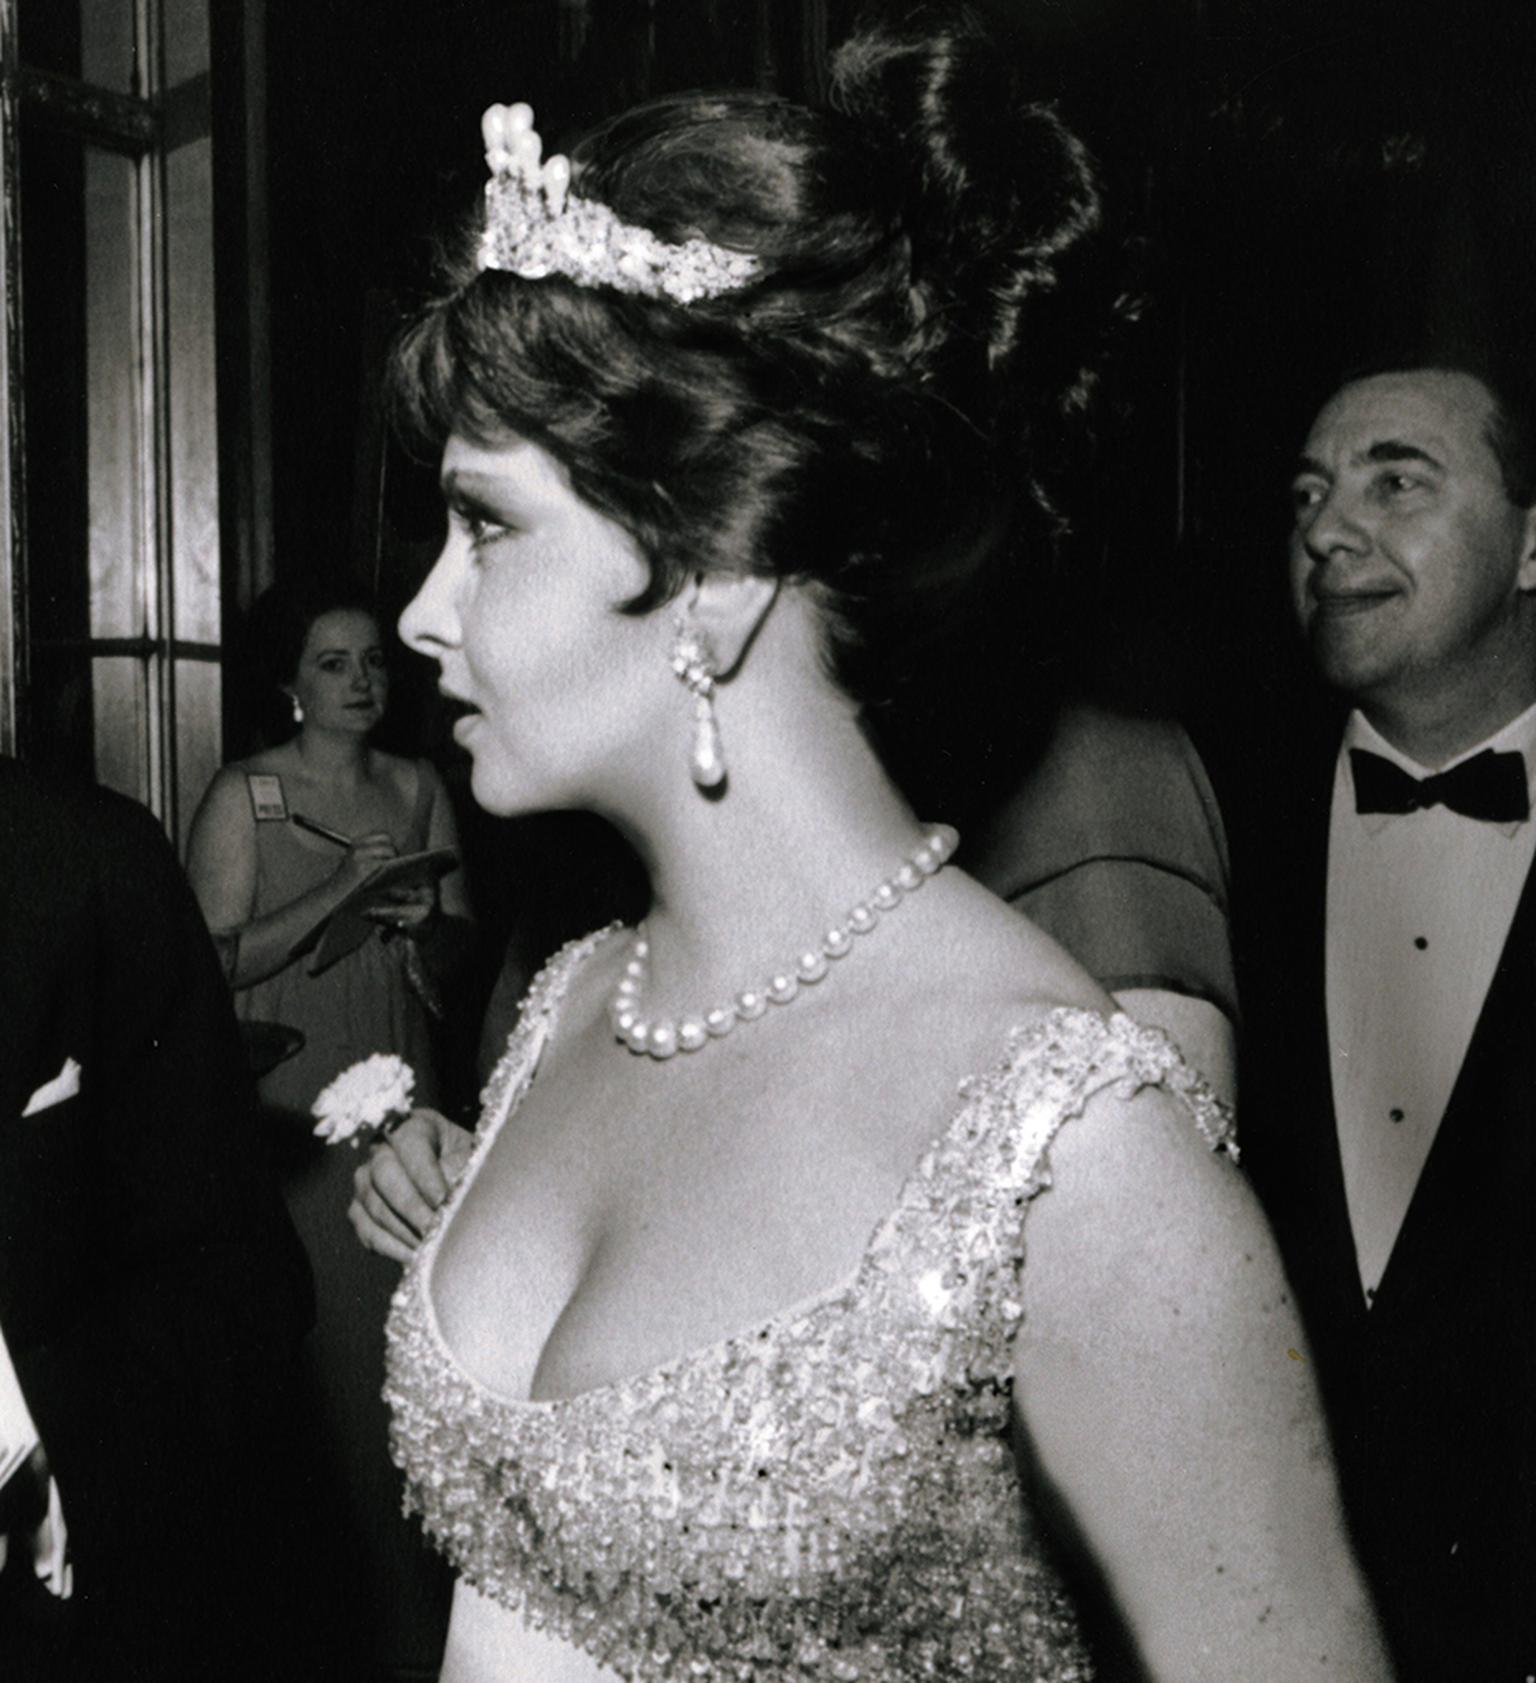 Gina Lollobrigida in New York in 1963 wearing the pair of natural pearl earrings that sold for £1.6 million at Sotheby's London in April 2013.